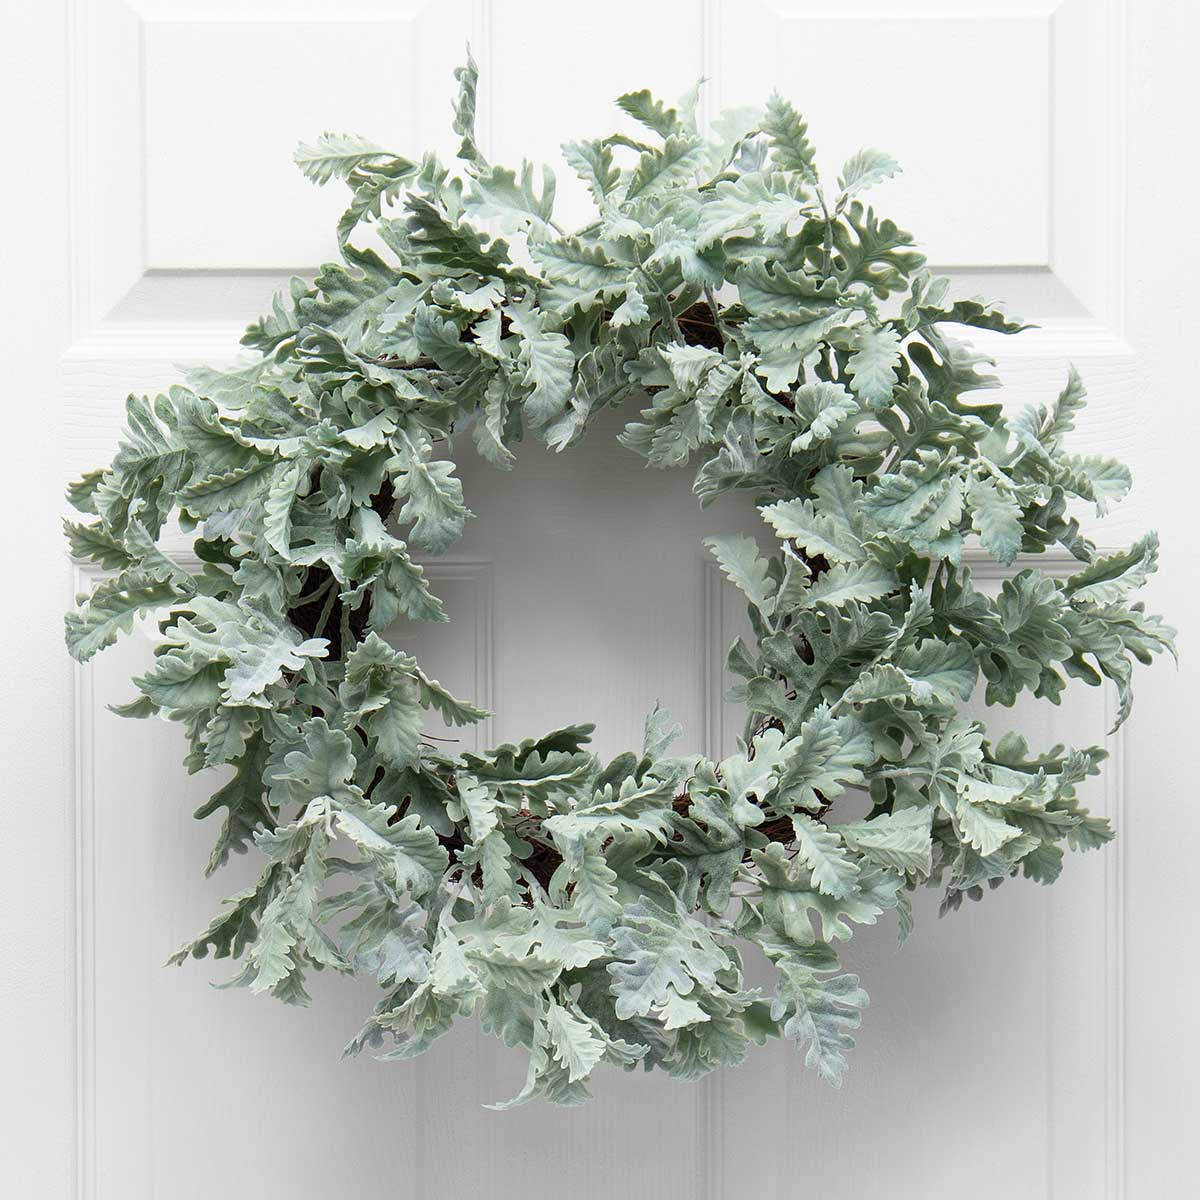 "DUSTY MILLER WREATH 20""(INNER RING 9"")"